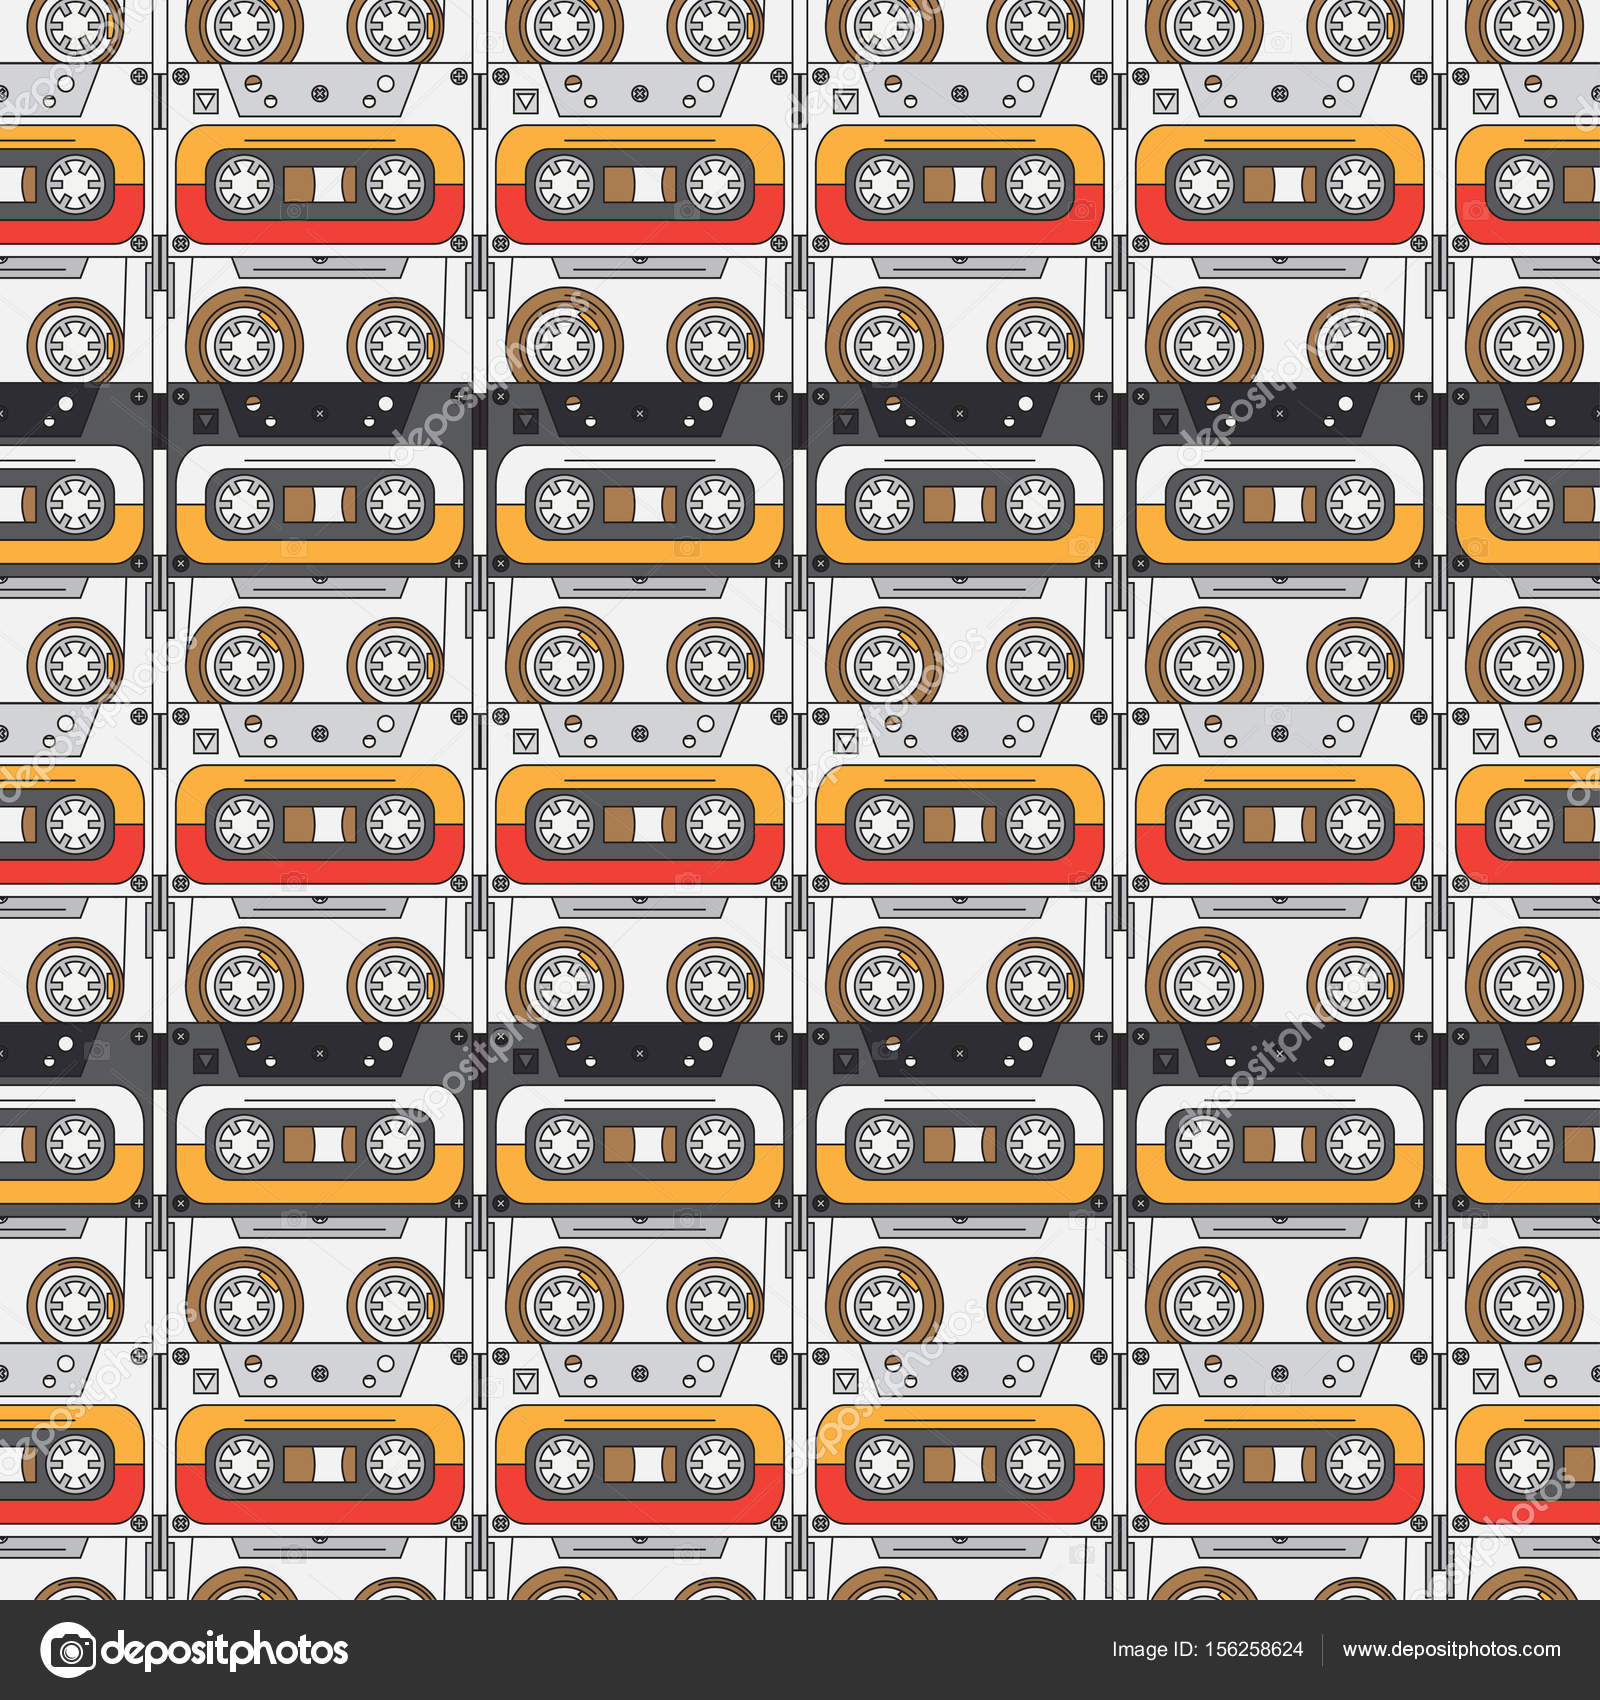 Popular Wallpaper Music Hipster - depositphotos_156258624-stock-illustration-seamless-background-pattern-hipster-style  Collection_33923.jpg